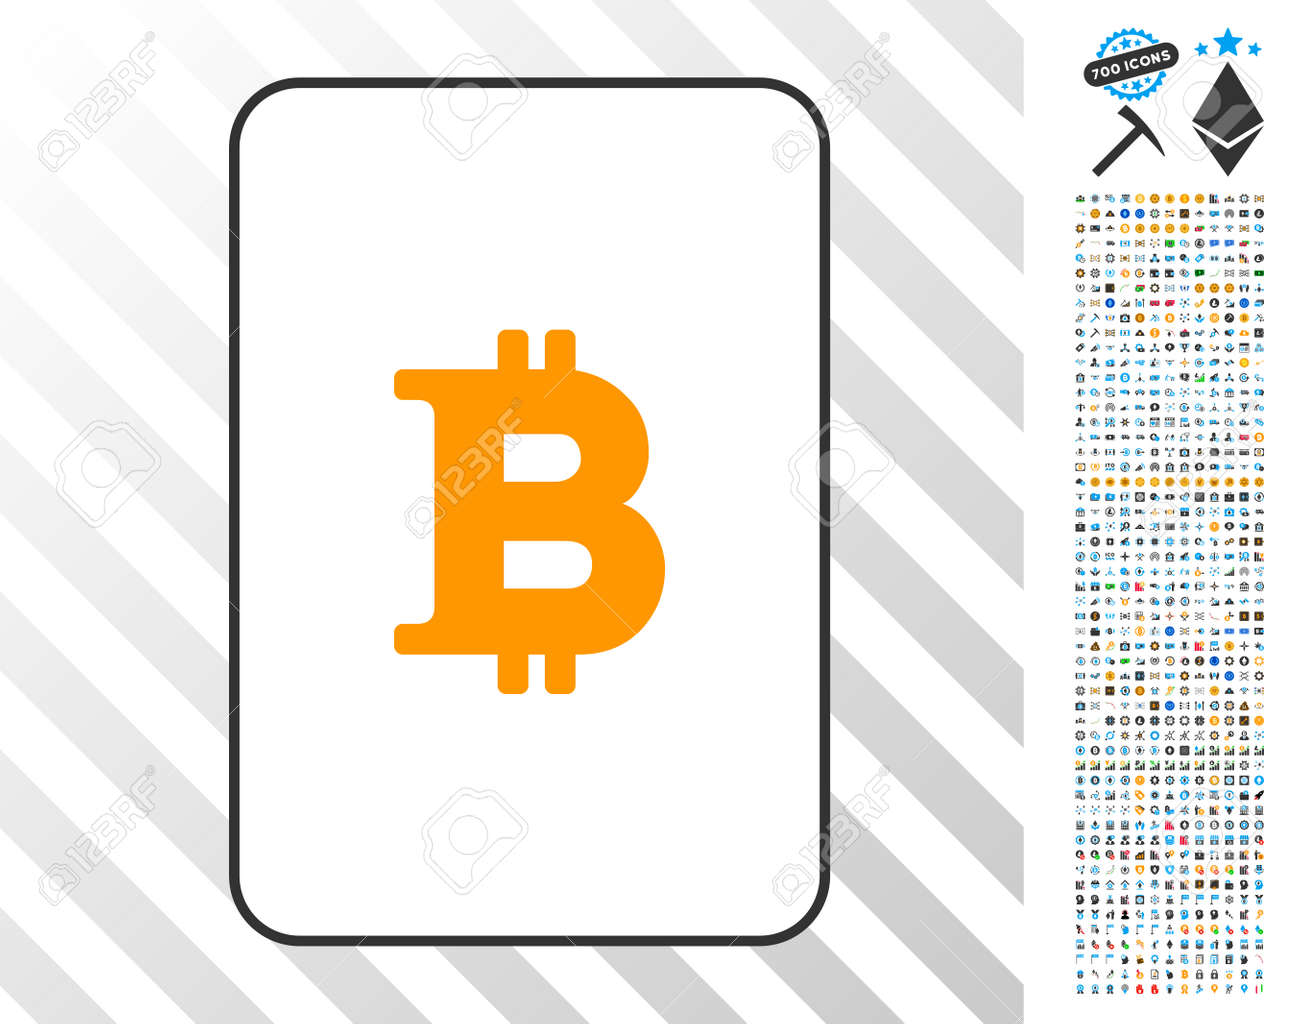 Bitcoin Playing Card Icon With 700 Bonus Bitcoin Mining And Blockchain Royalty Free Cliparts Vectors And Stock Illustration Image 93481424